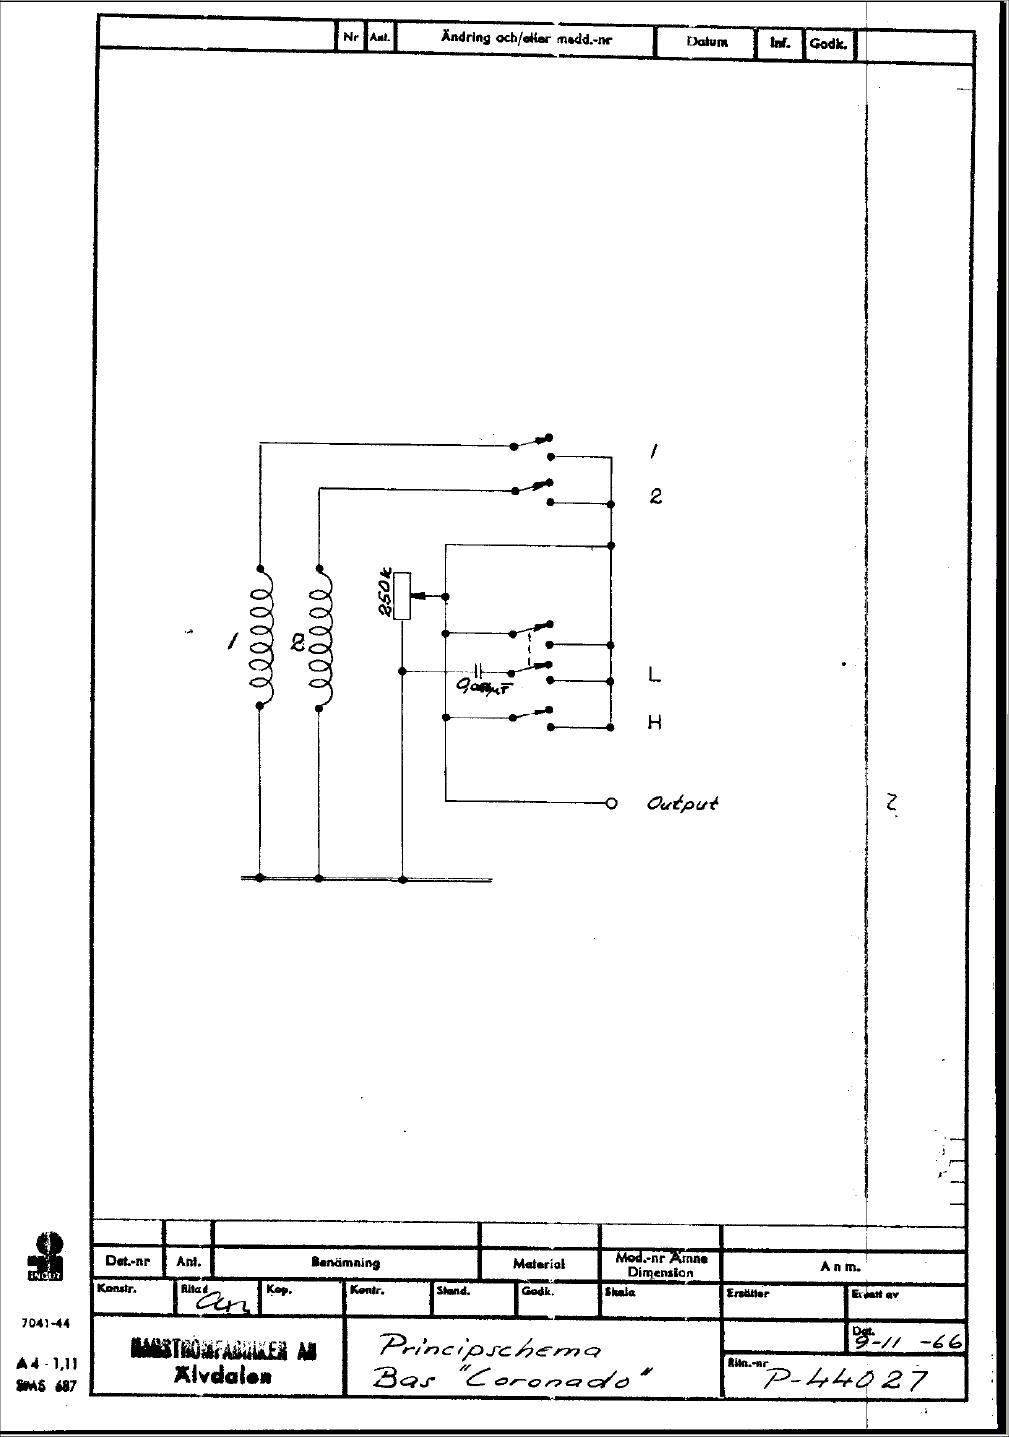 hagstrom wiring diagram   23 wiring diagram images